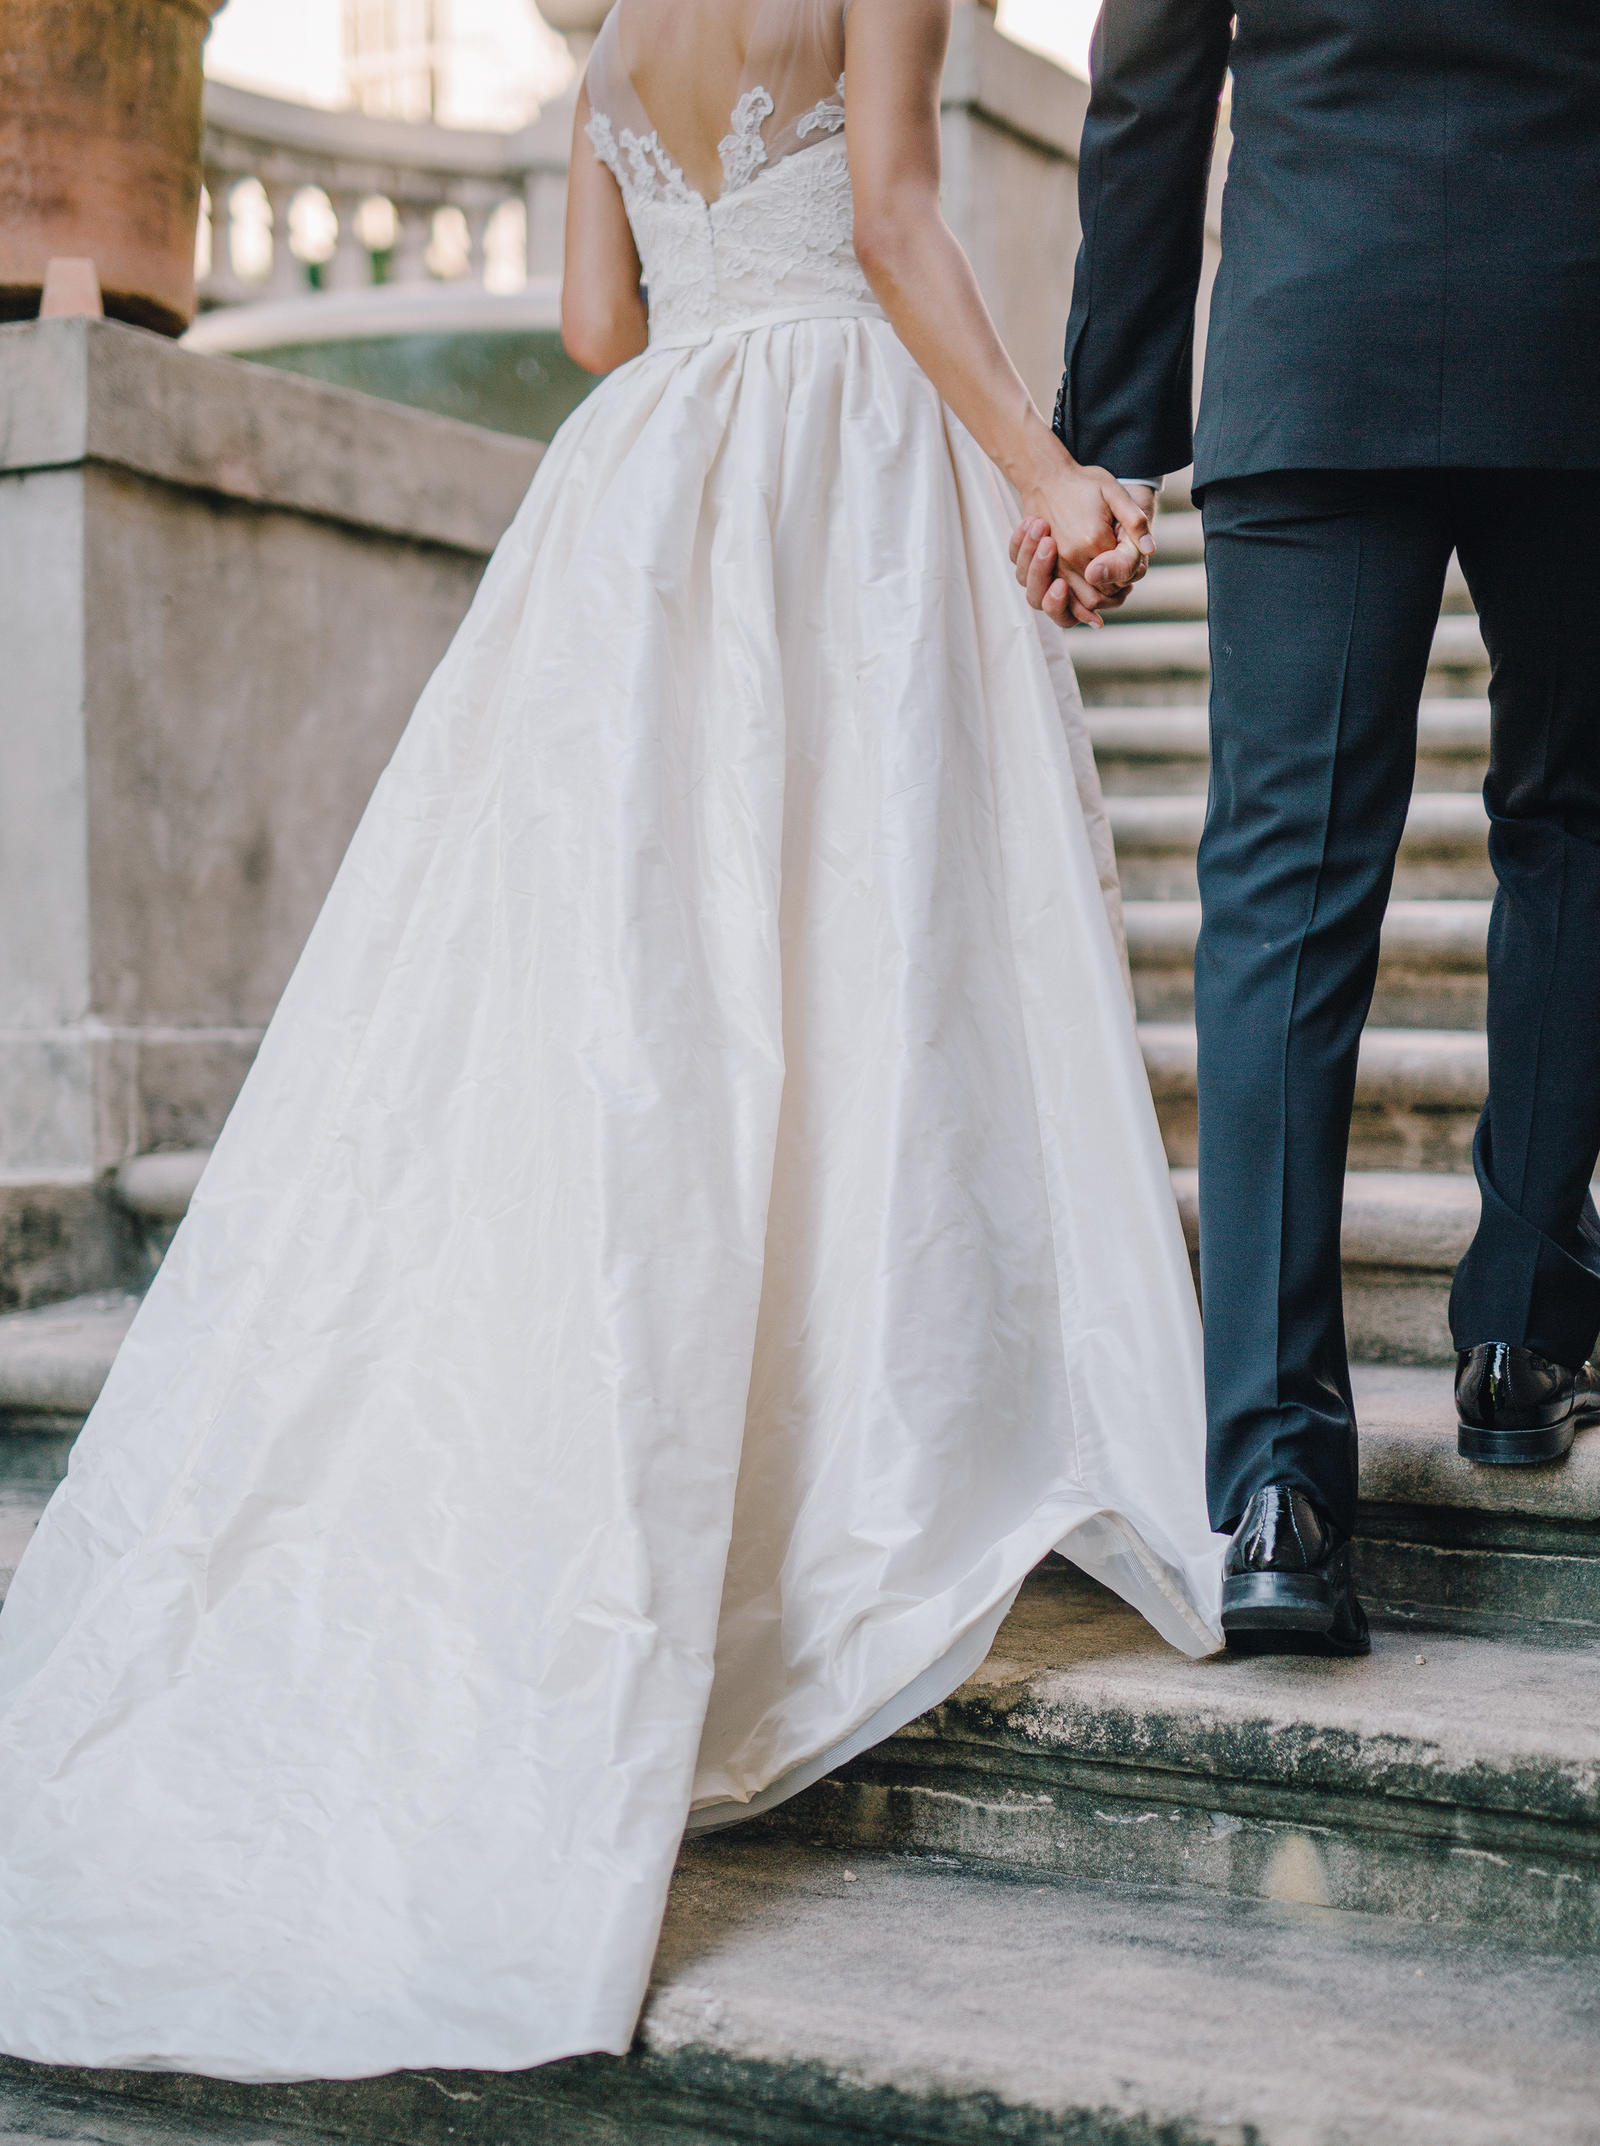 Wedding Photography | A view of the back of a wedding dress.